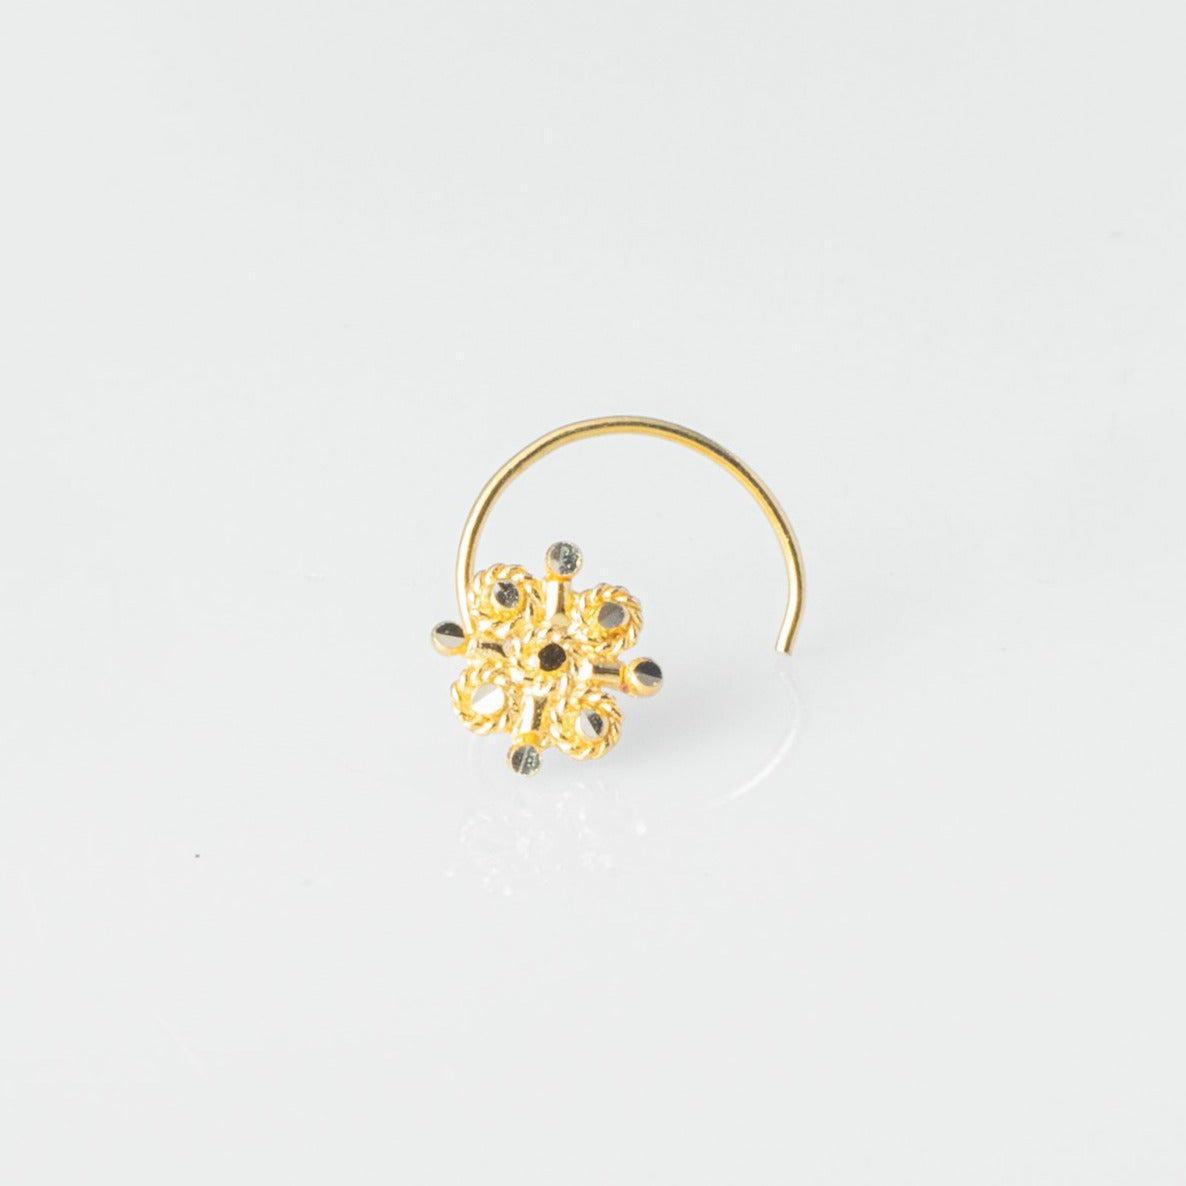 18ct Yellow Gold Wire Coil Back Nose Stud with Filigree Design NIP-5-130d